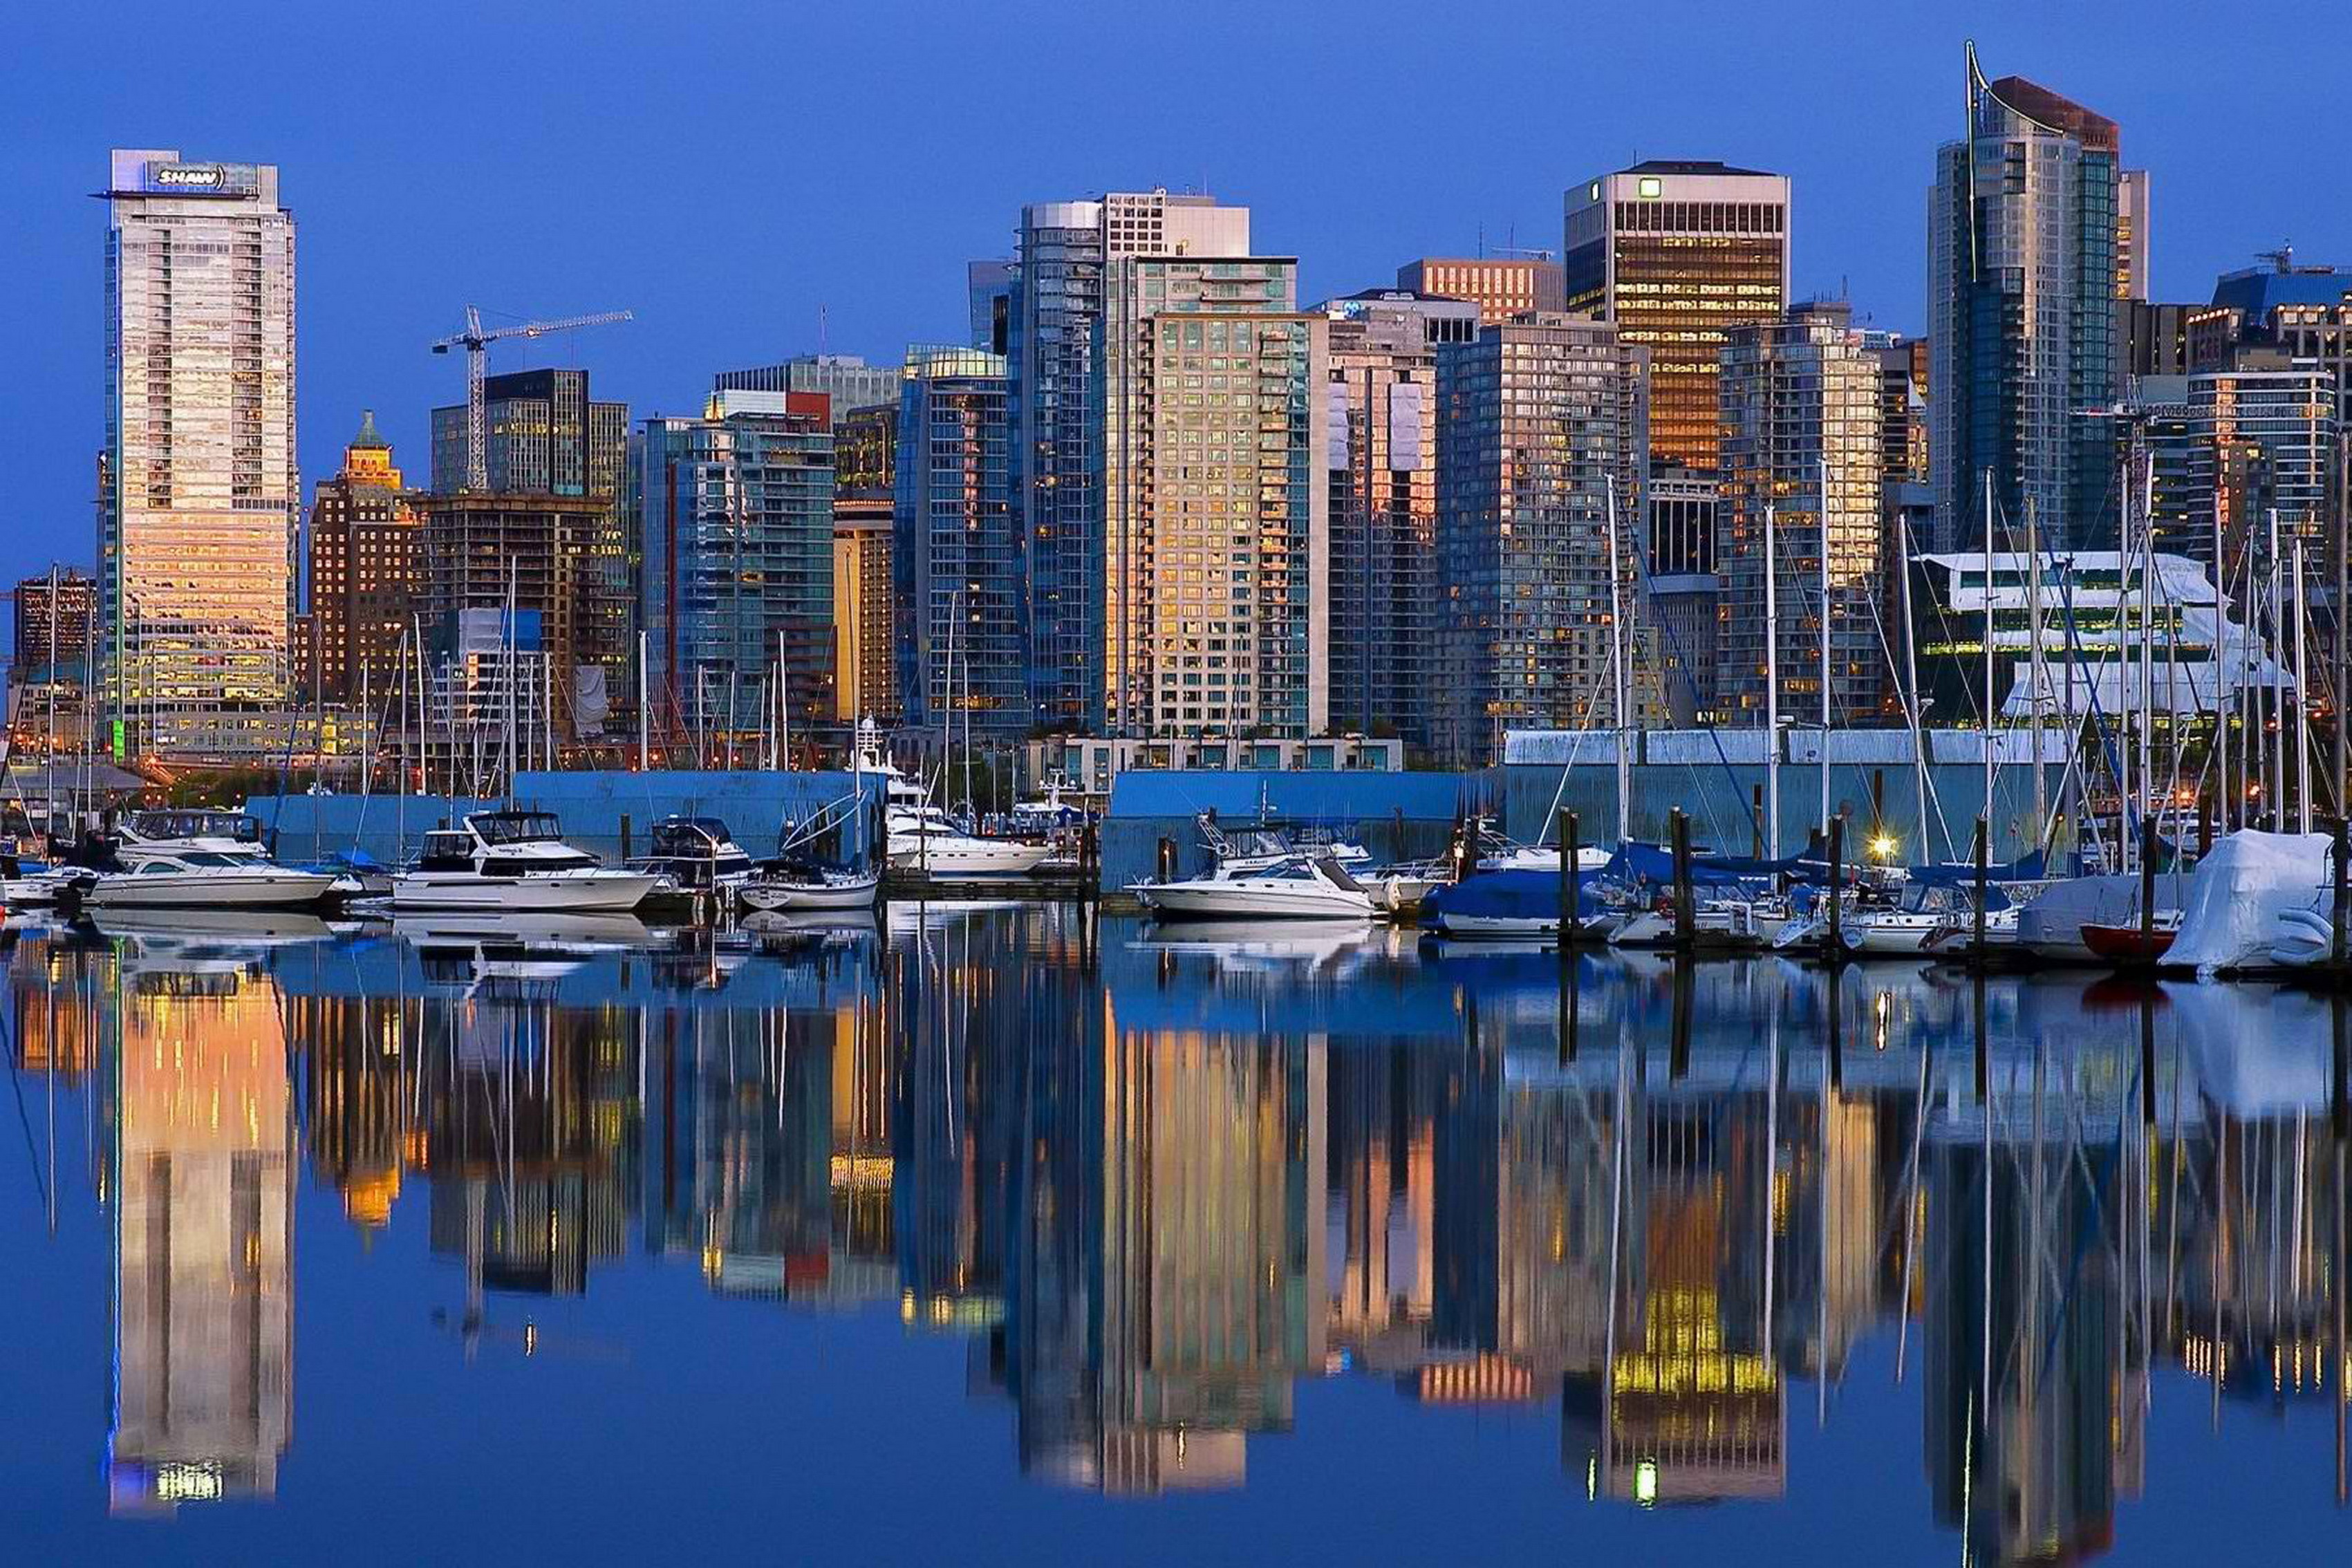 Color printing downtown vancouver - Home Decoration Skylines Downtown Vancouver British Columbia Harbours Fabric Poster Print Accept Customization 407fj